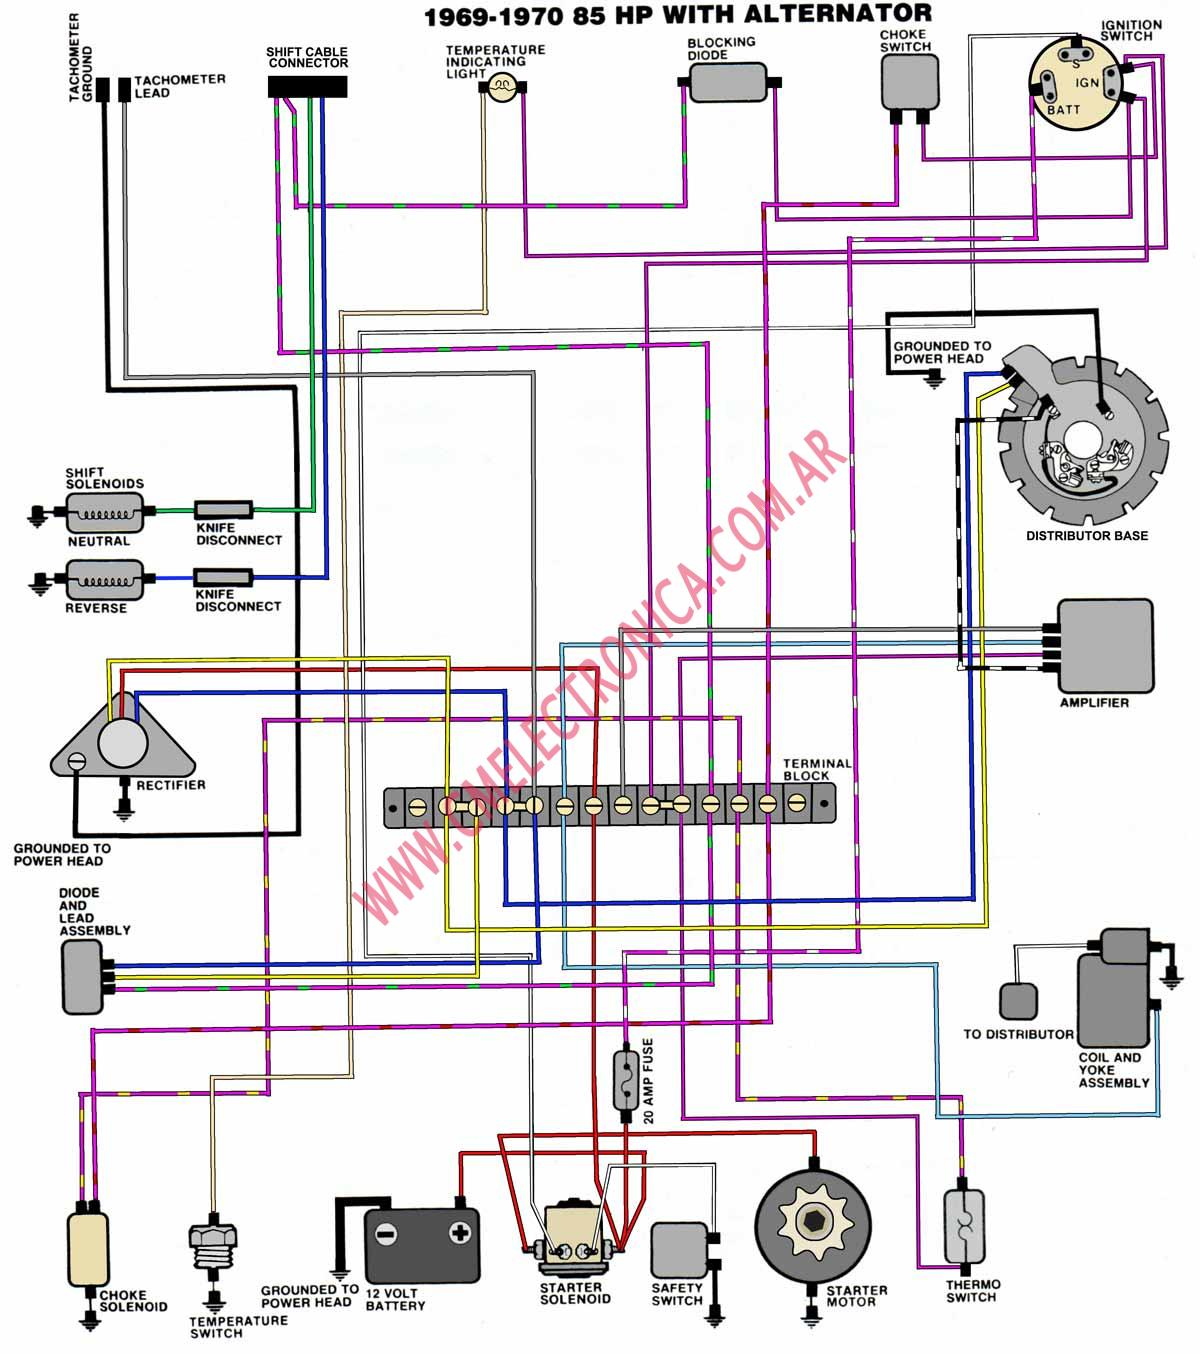 evinrude_johnson 69_70_v4 yamaha outboard wiring harness for trim gauge yamaha outboard Yamaha Outboard Schematic Diagram at readyjetset.co